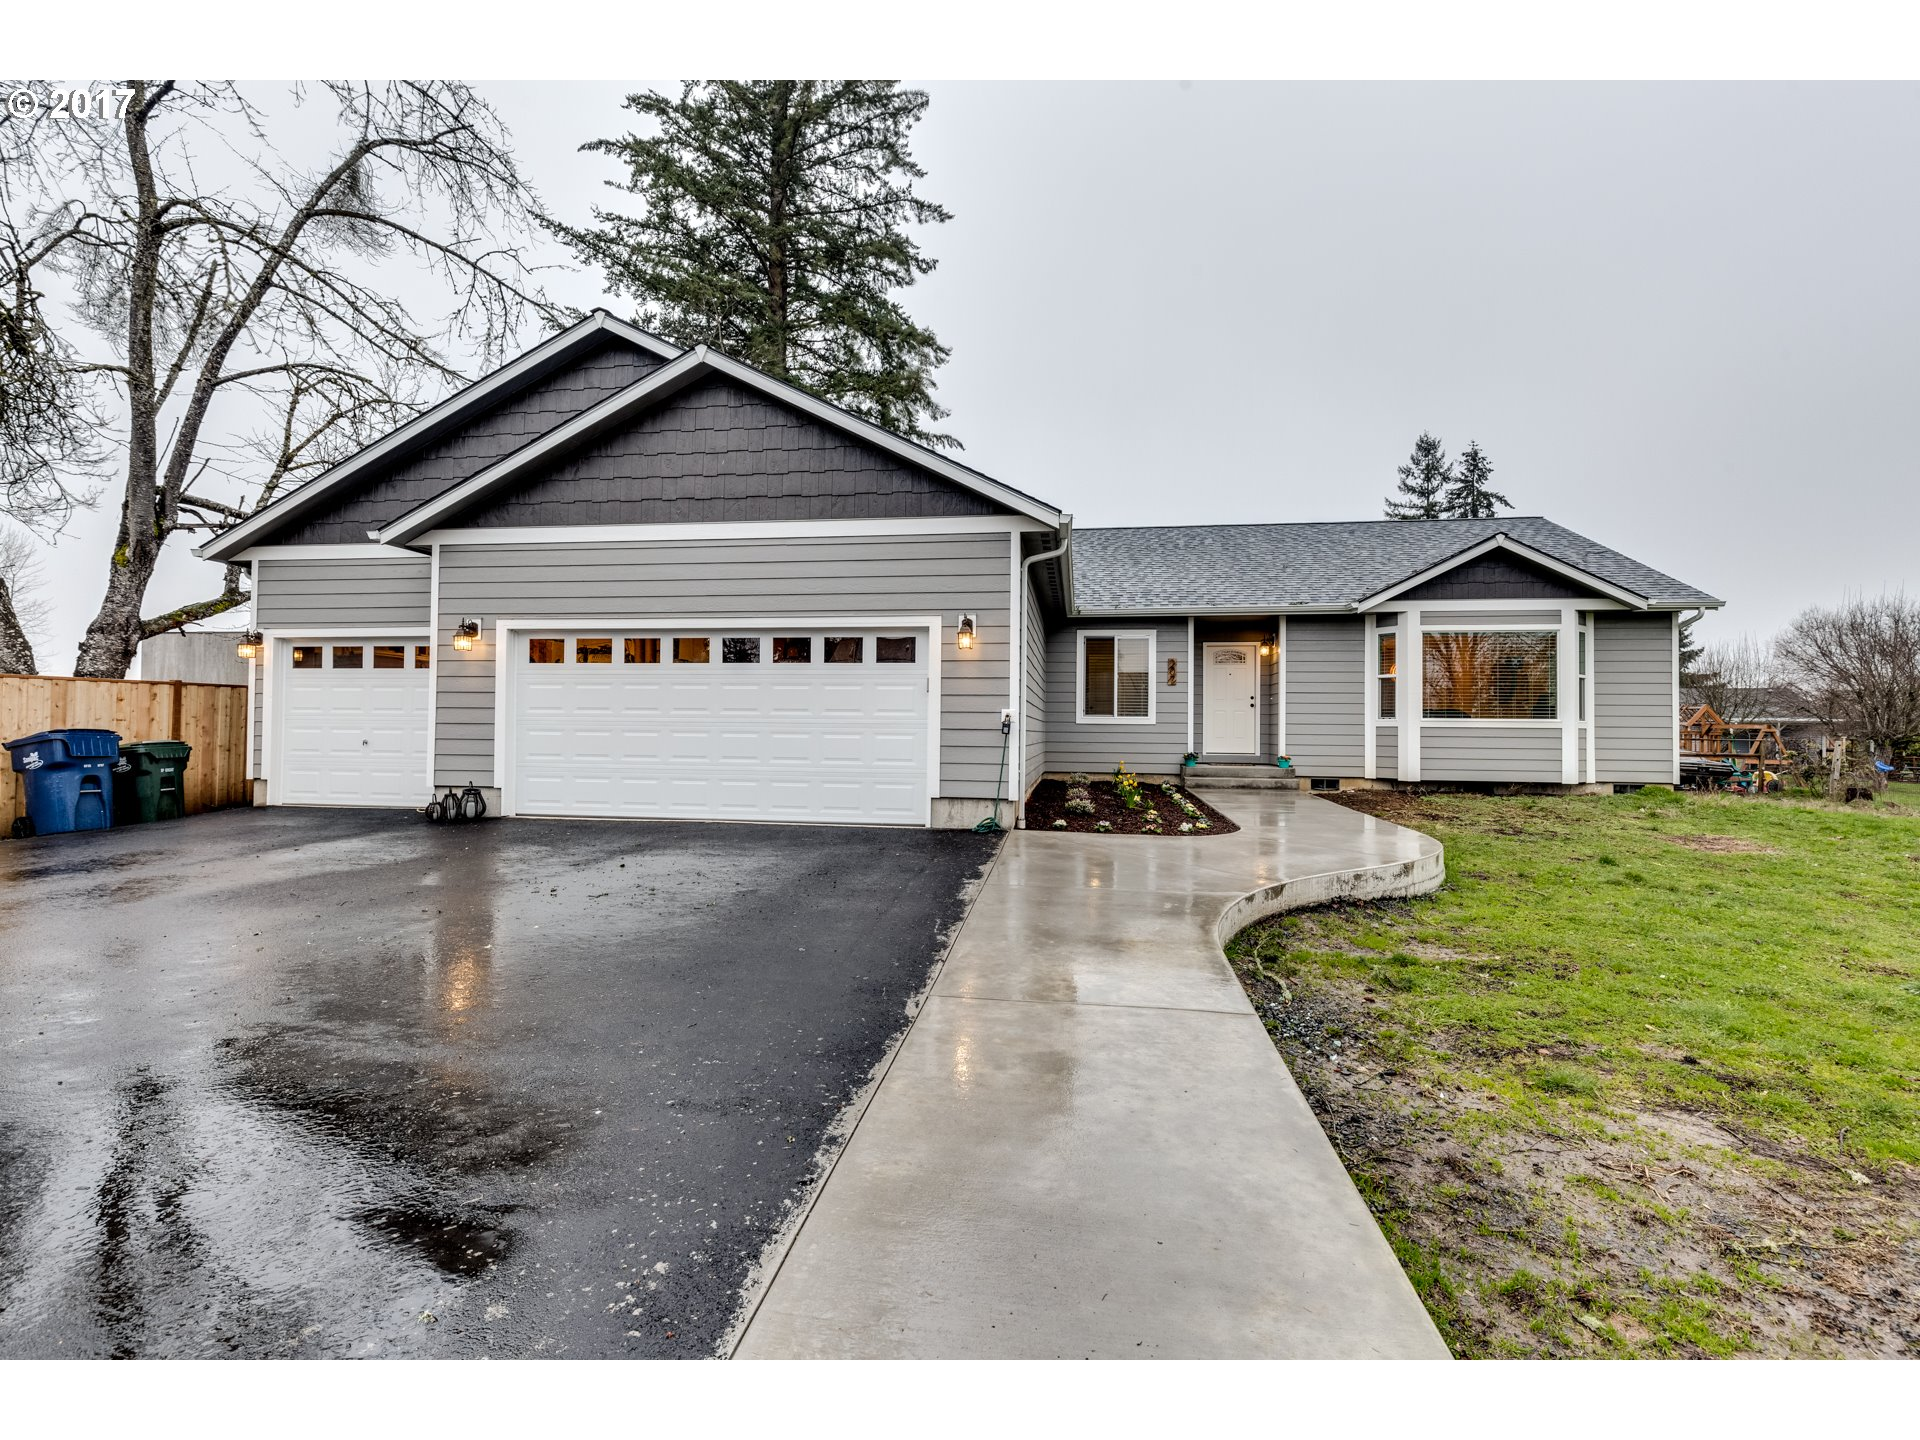 207 S 10TH ST, Creswell OR 97426